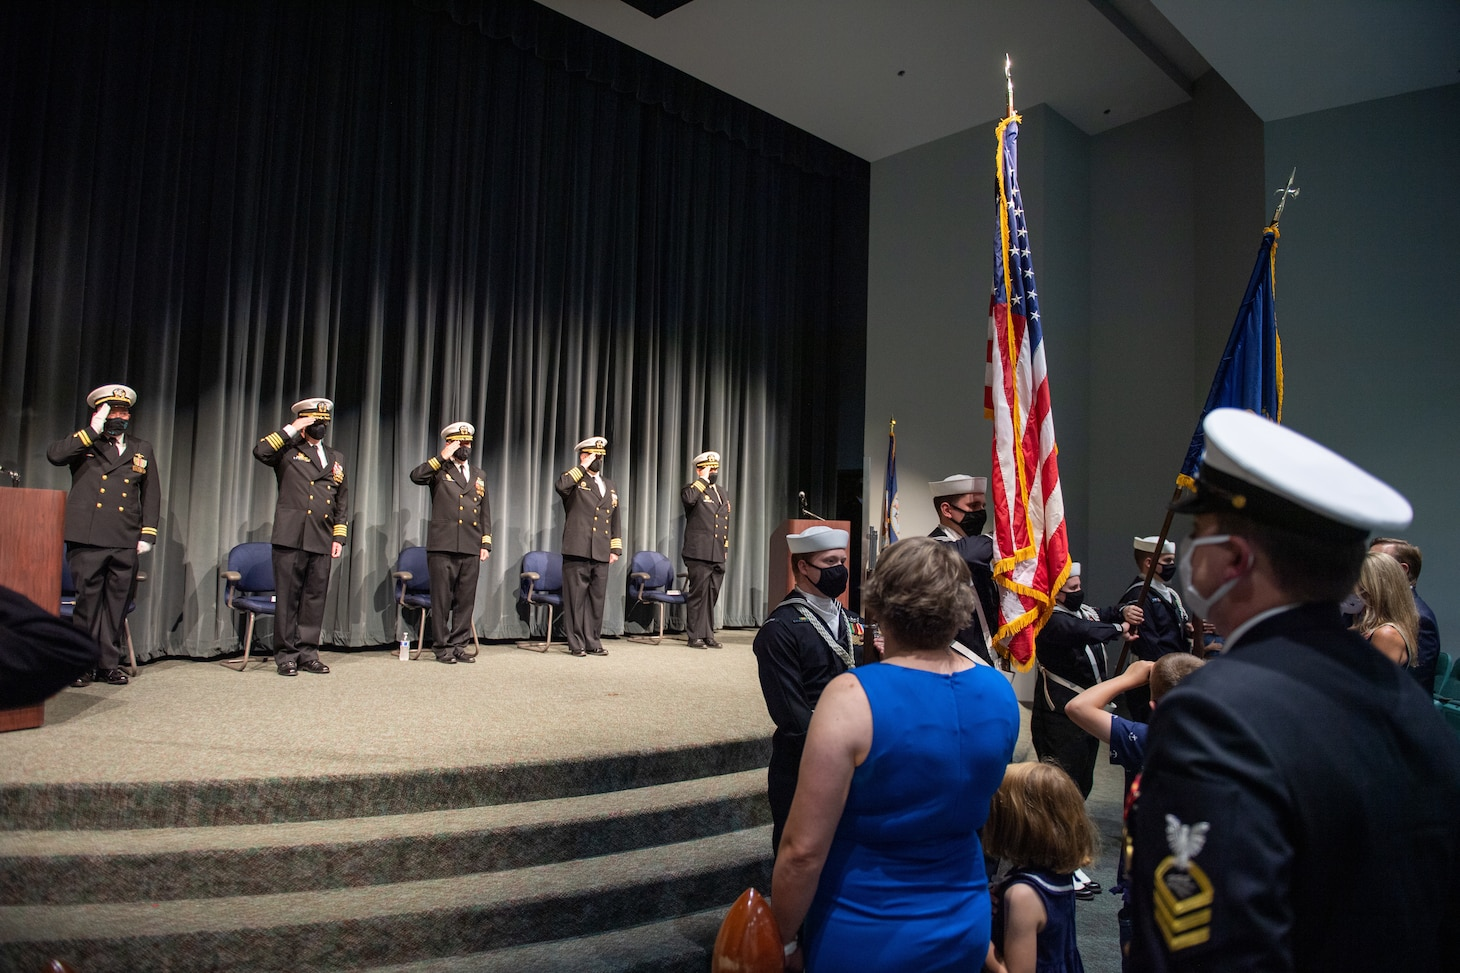 Naval Base Kitsap Color Guard parade the colors during the USS Maine (SSBN 741) Gold Crew change of command ceremony at Naval Undersea Museum in Keyport, Washington Sept. 9, 2021. During the ceremony, Cmdr. Travis Wood relieved Cmdr. Robert Garis as commanding officer of USS Maine (SSBN 741) Gold Crew. (U.S. Navy Photo by Mass Communication Specialist 2nd Class Emilia C. Hilliard)